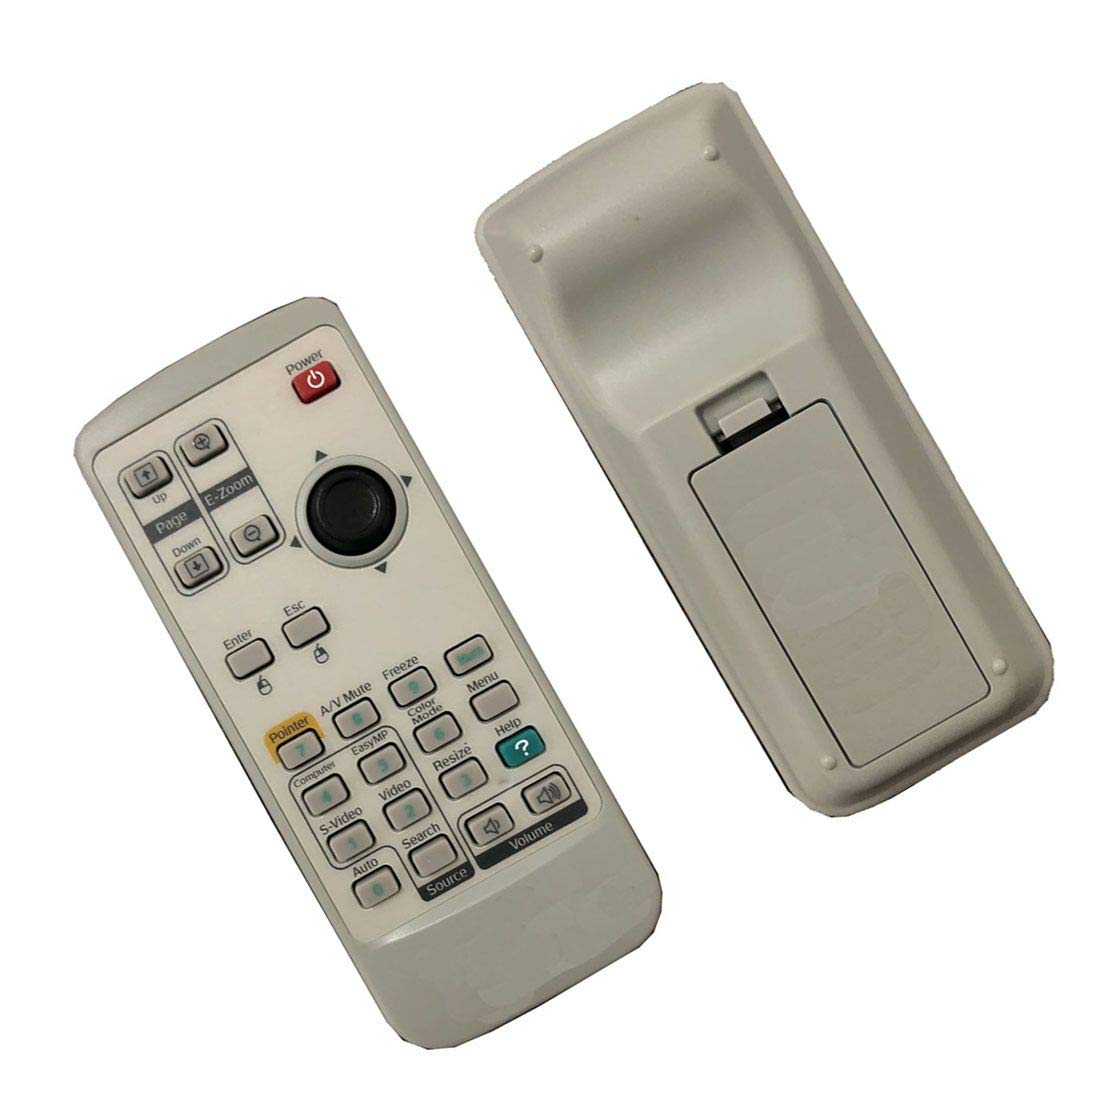 4EVER Replacment remote control for Epson Powerlite 83+ 83C 83H EX90 EB-410W projector by 4EVER E.T.C